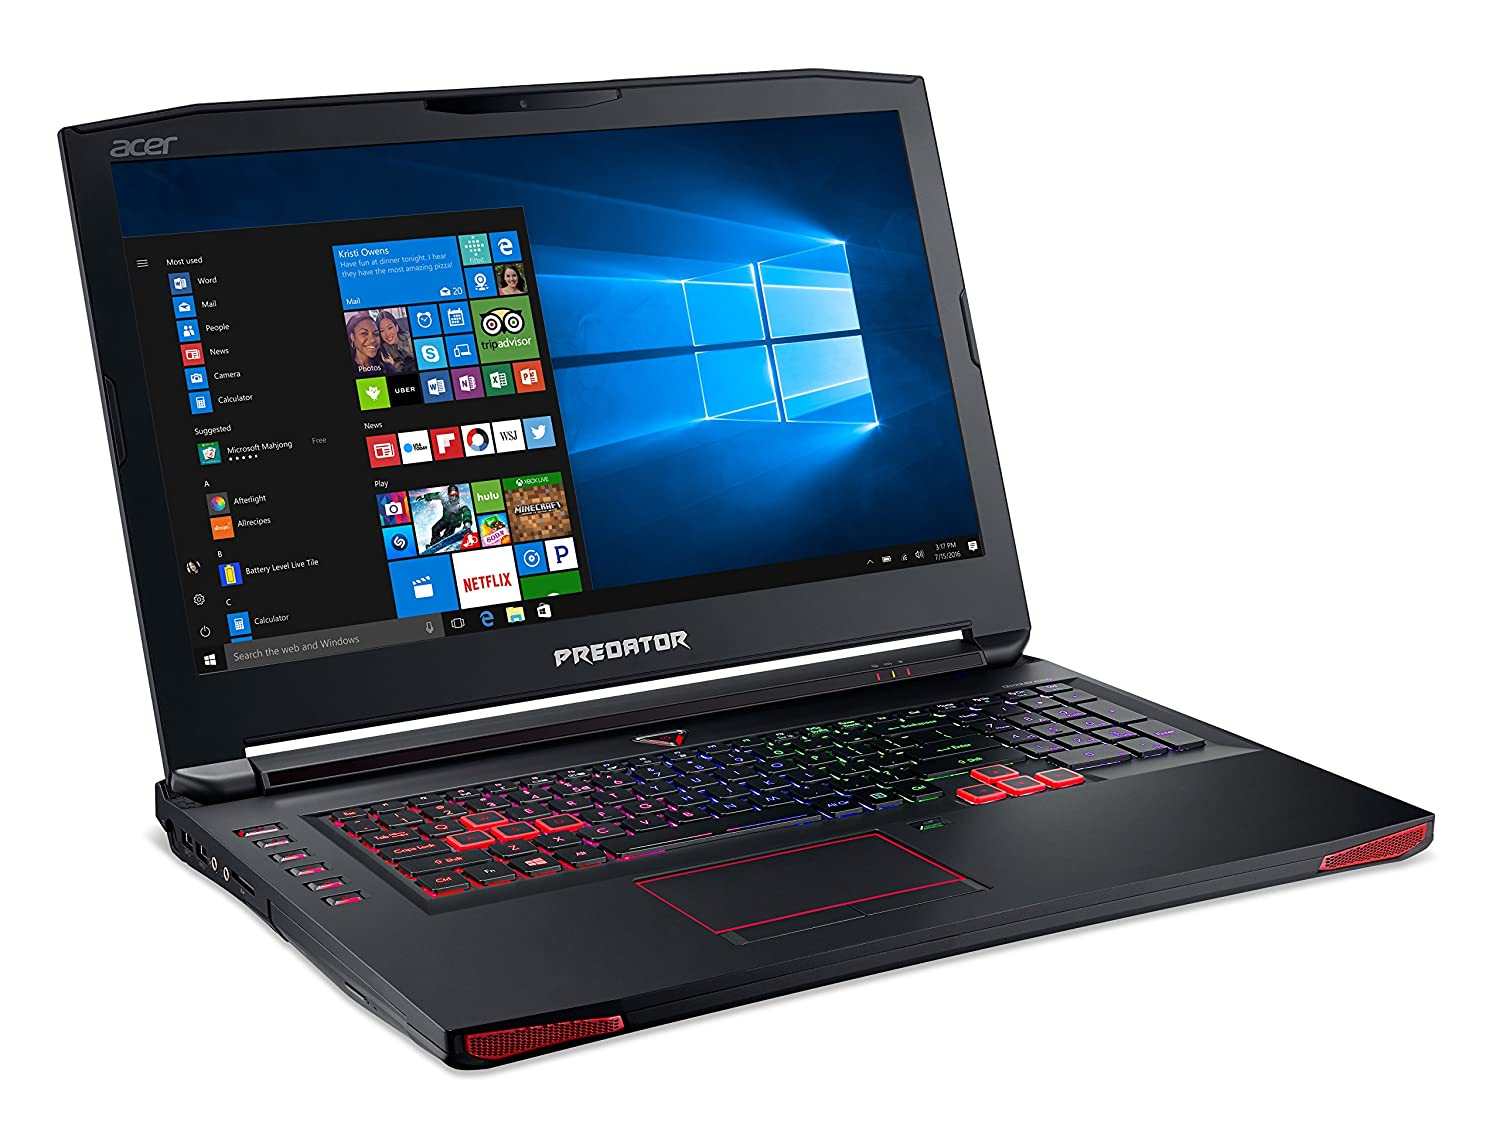 Acer Predator G9-591R Intel Graphics Drivers for Windows